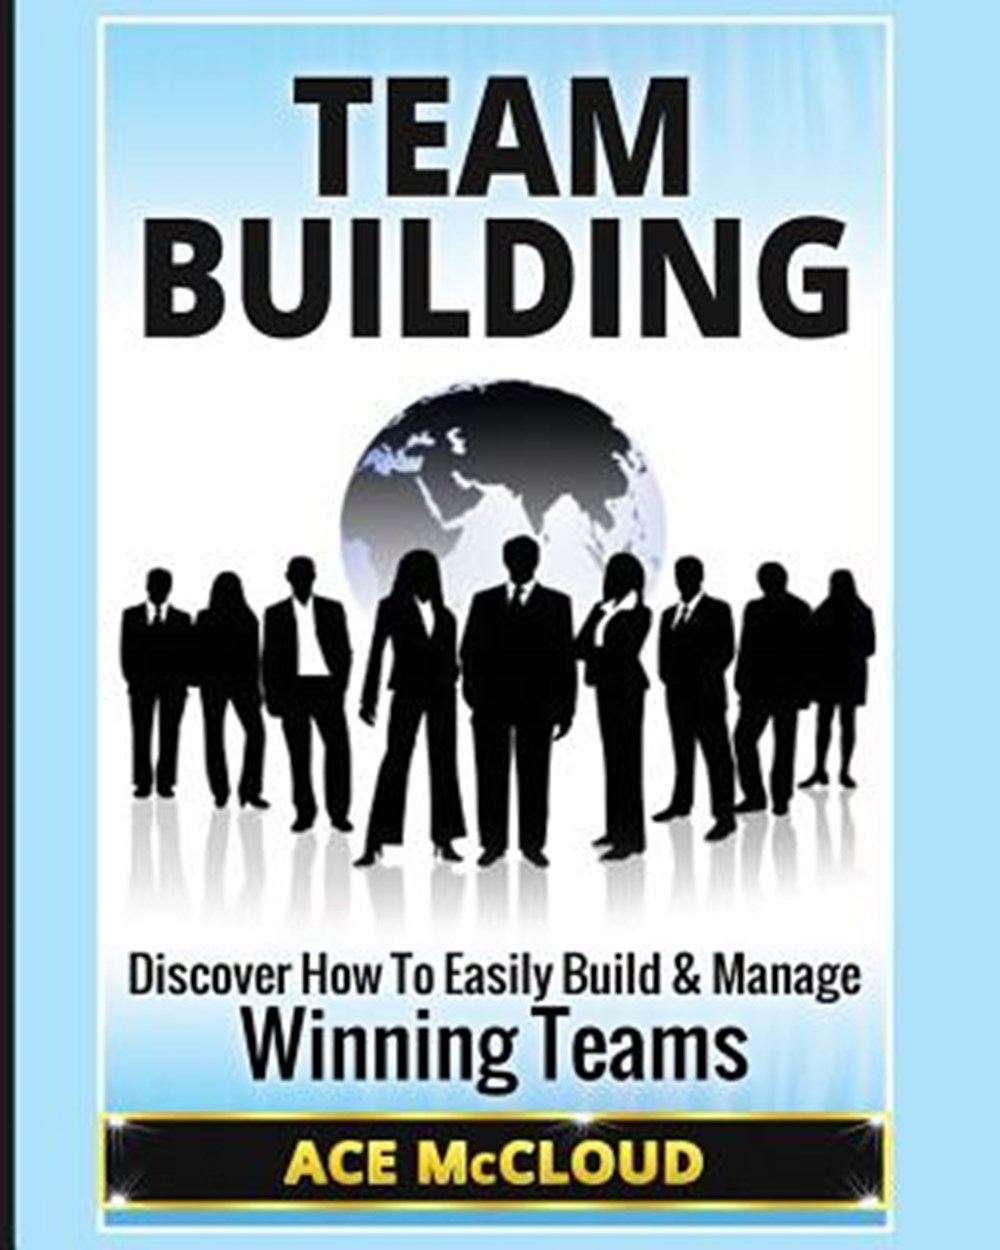 Team Building Discover How To Easily Build & Manage Winning Teams